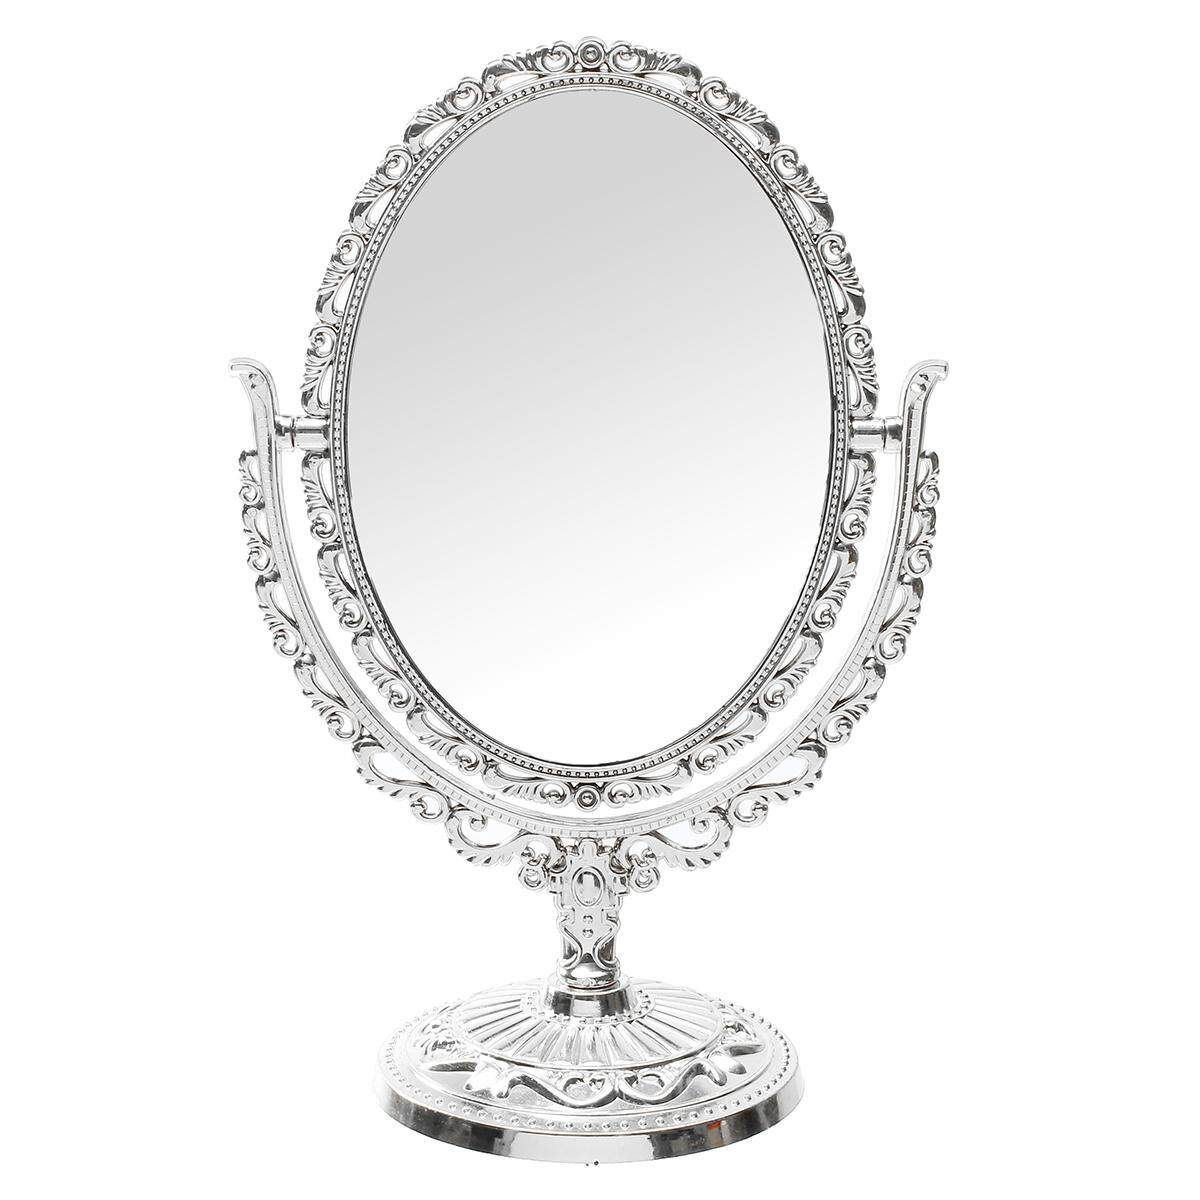 Vanity Mirror Oval Shape 31cm Silver Vintage Handheld Table Top Makeup Mirror(silver) By Glimmer.